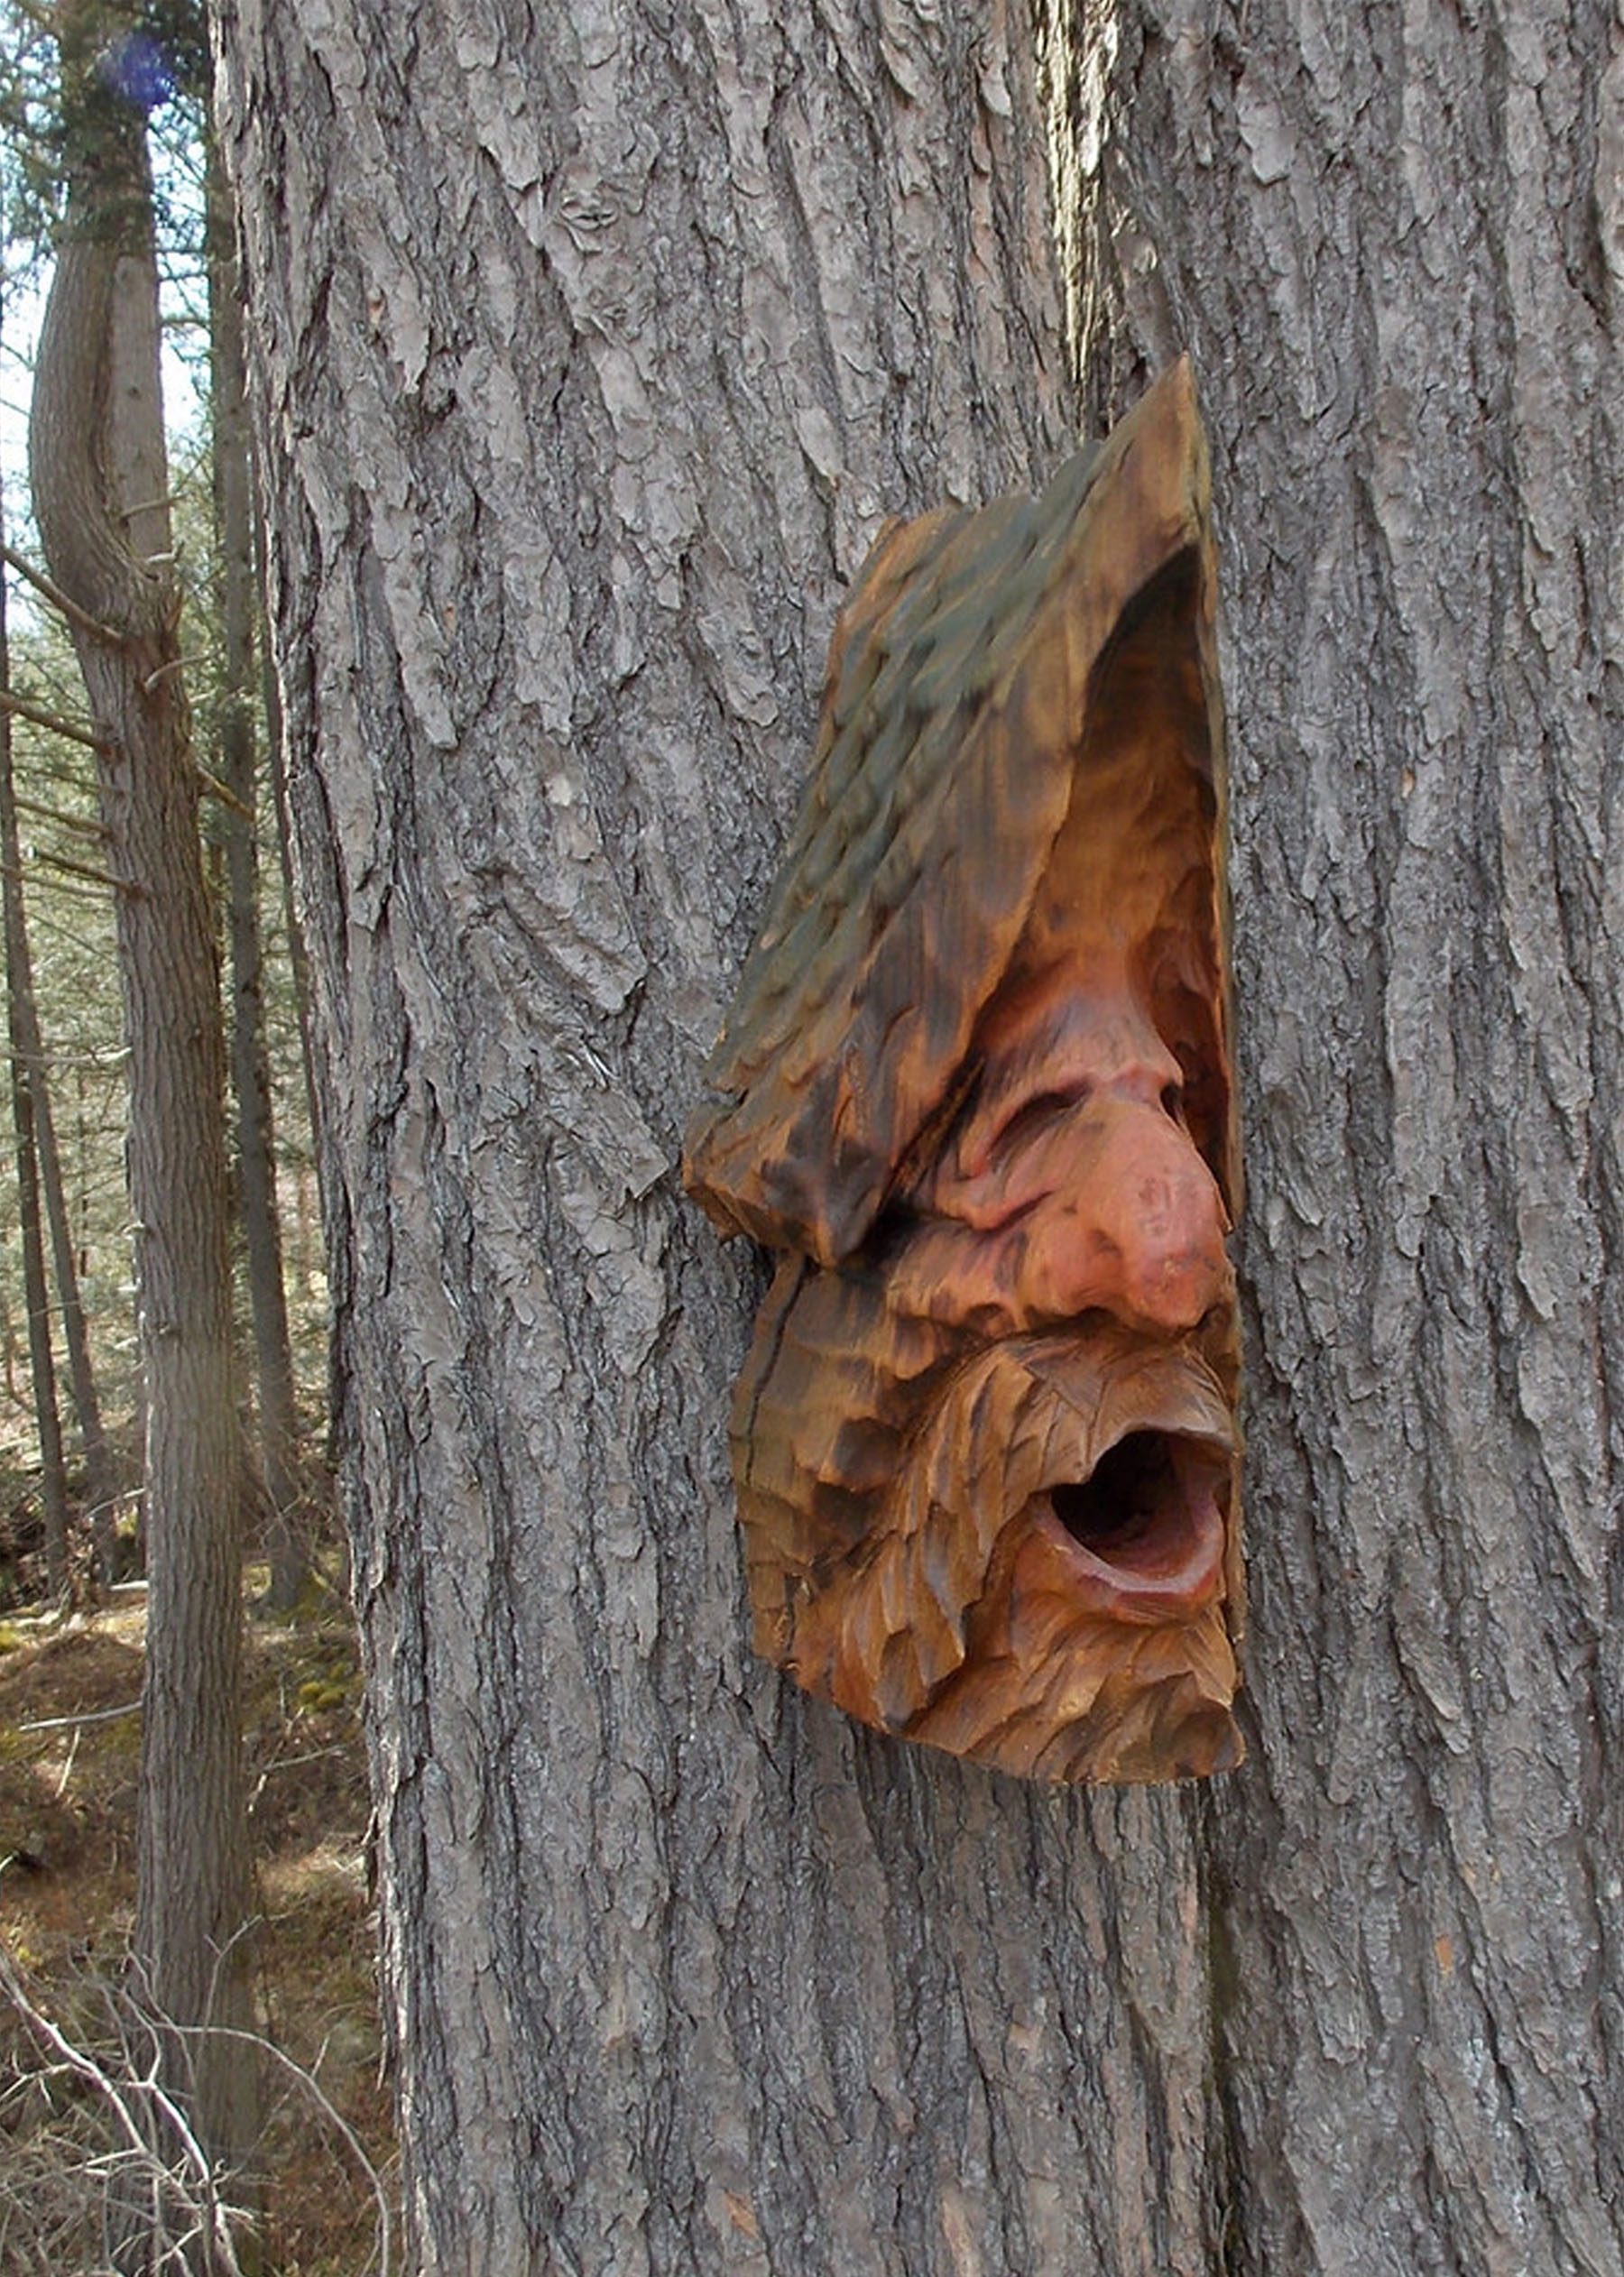 Harnett-Designs-Woodworking-Chainsw-Carved-Birdhouse